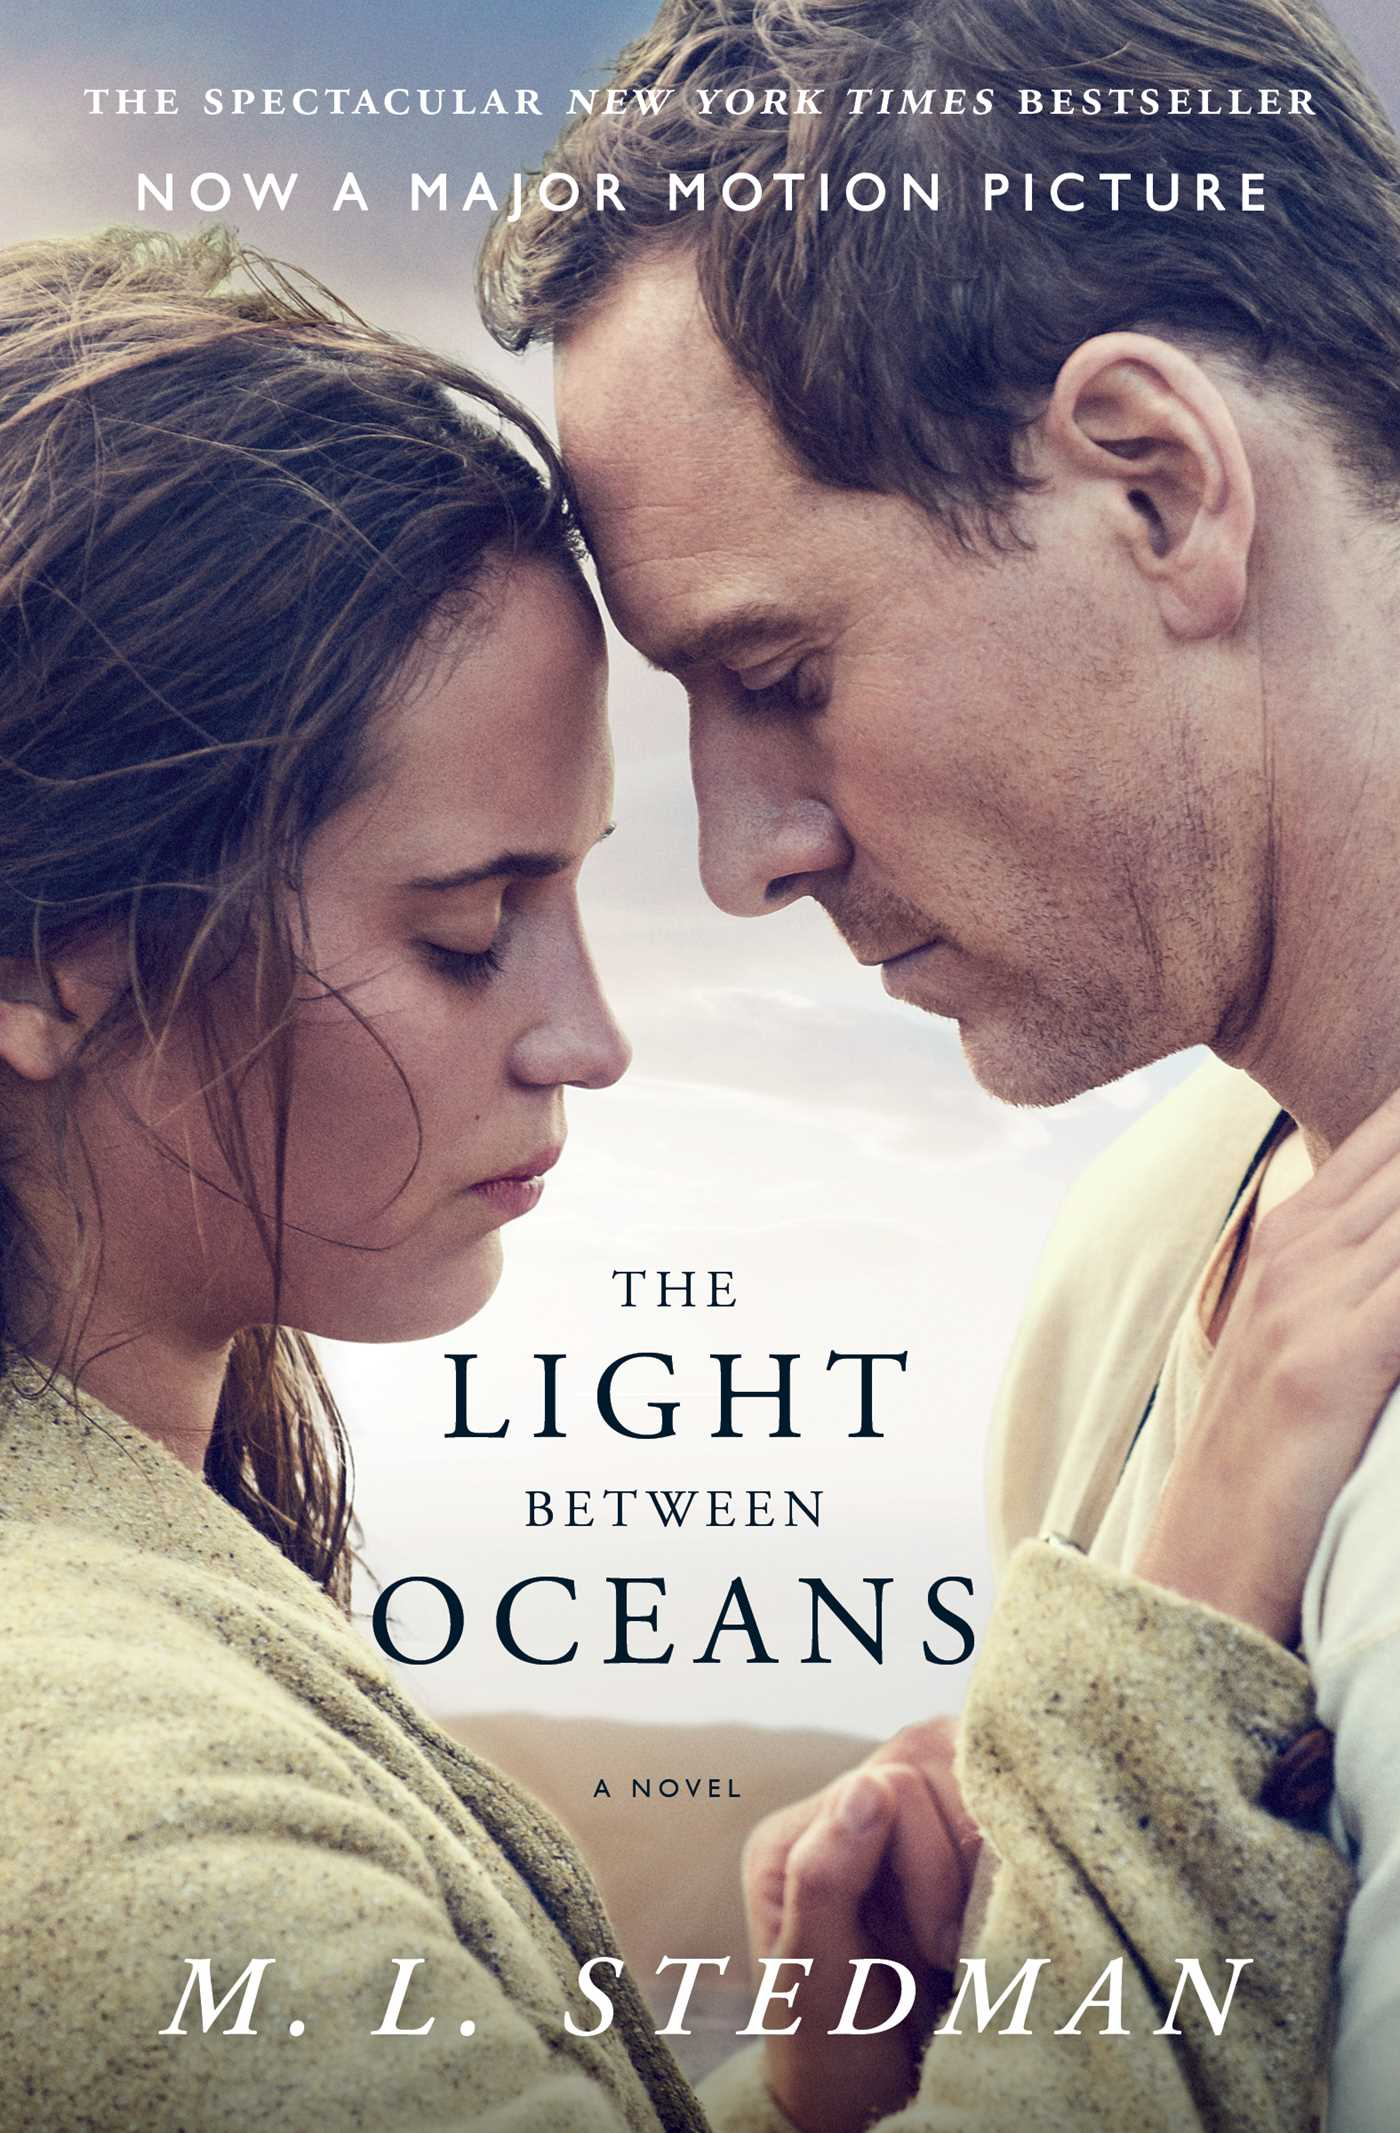 The light between oceans 9781501106484 hr